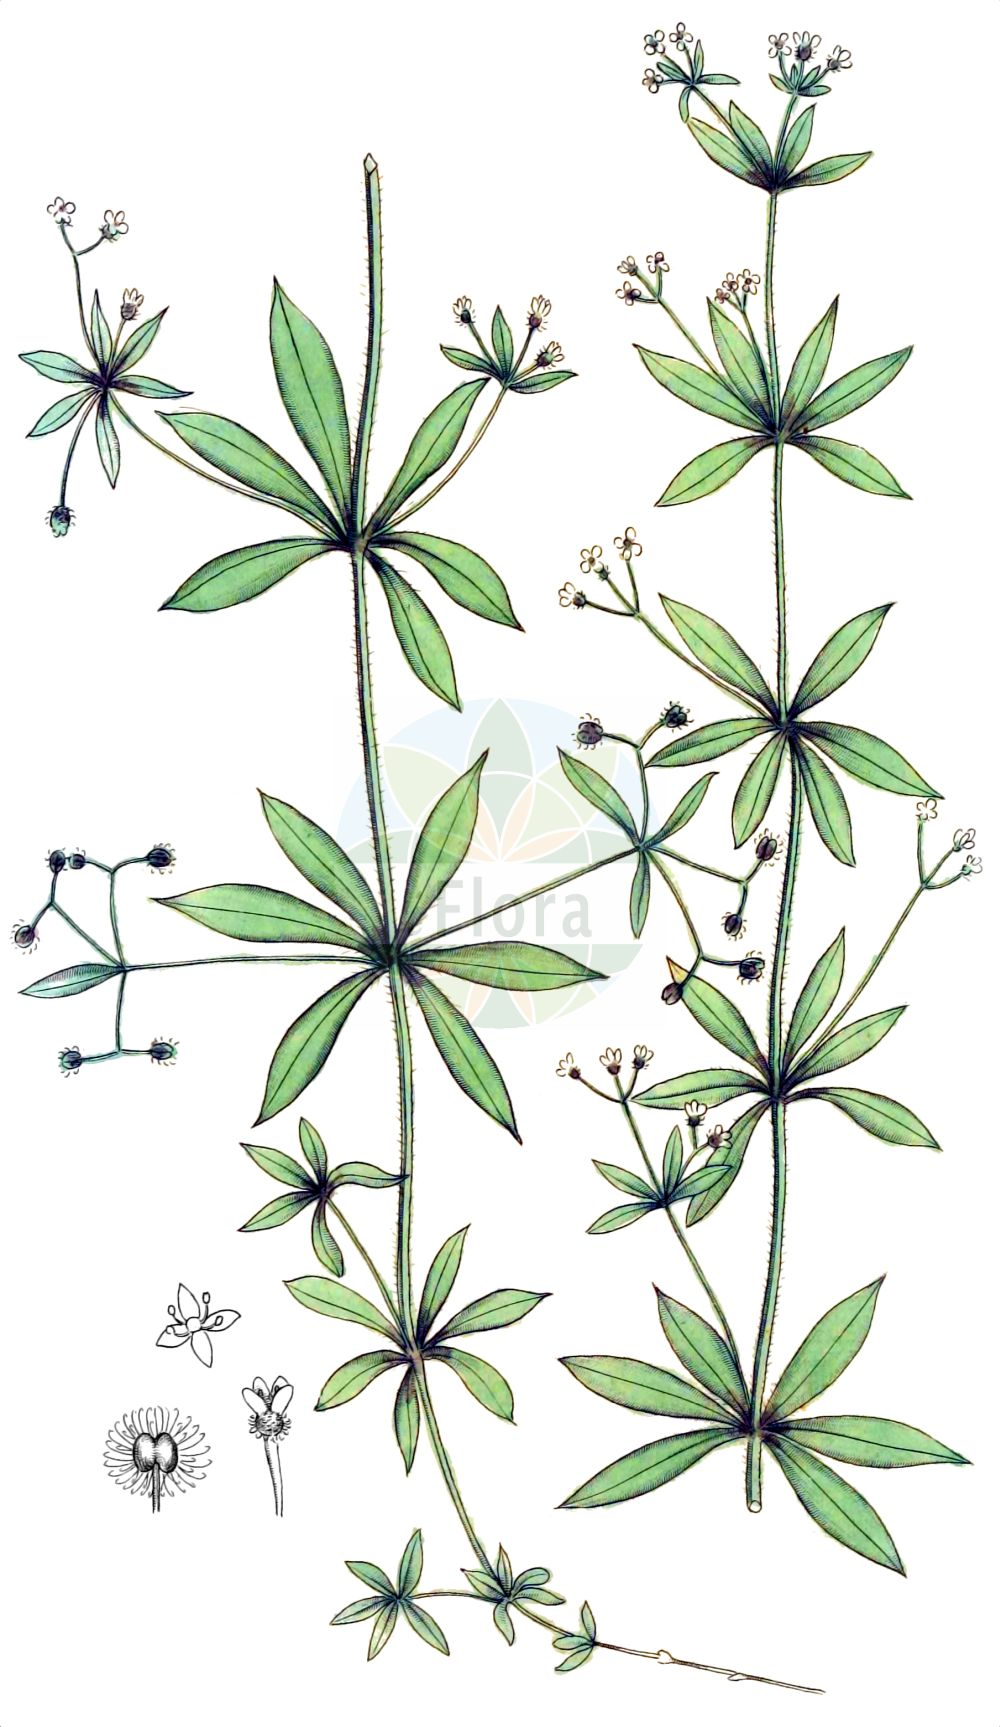 Historische Abbildung von Galium triflorum. Das Bild zeigt Blatt, Bluete, Frucht und Same. ---- Historical Drawing of Galium triflorum.The image is showing leaf, flower, fruit and seed.(Galium triflorum,Galium triflorum,Galium,Labkraut,Bedstraw,Rubiaceae,Roetegewaechse,Kaffeegewaechse,Krappgewaechse,Labkrautgewaechse,Bedstraw family,Blatt,Bluete,Frucht,Same,leaf,flower,fruit,seed,Palmstruch (1807-1843))